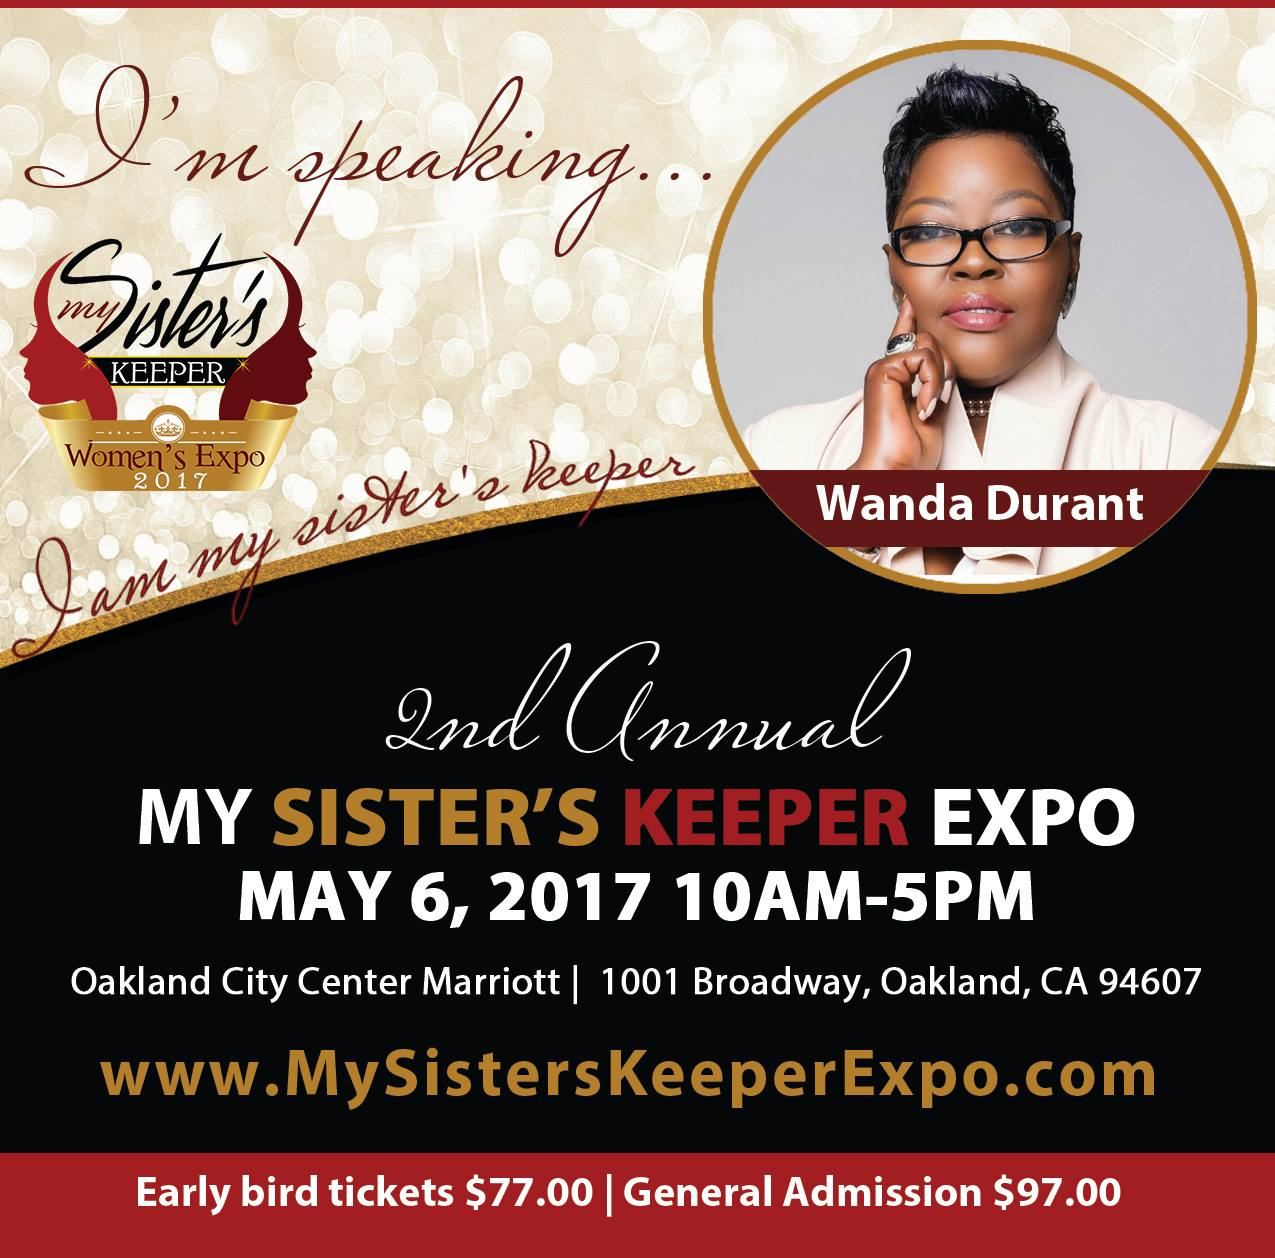 My Sister's Keeper Expo